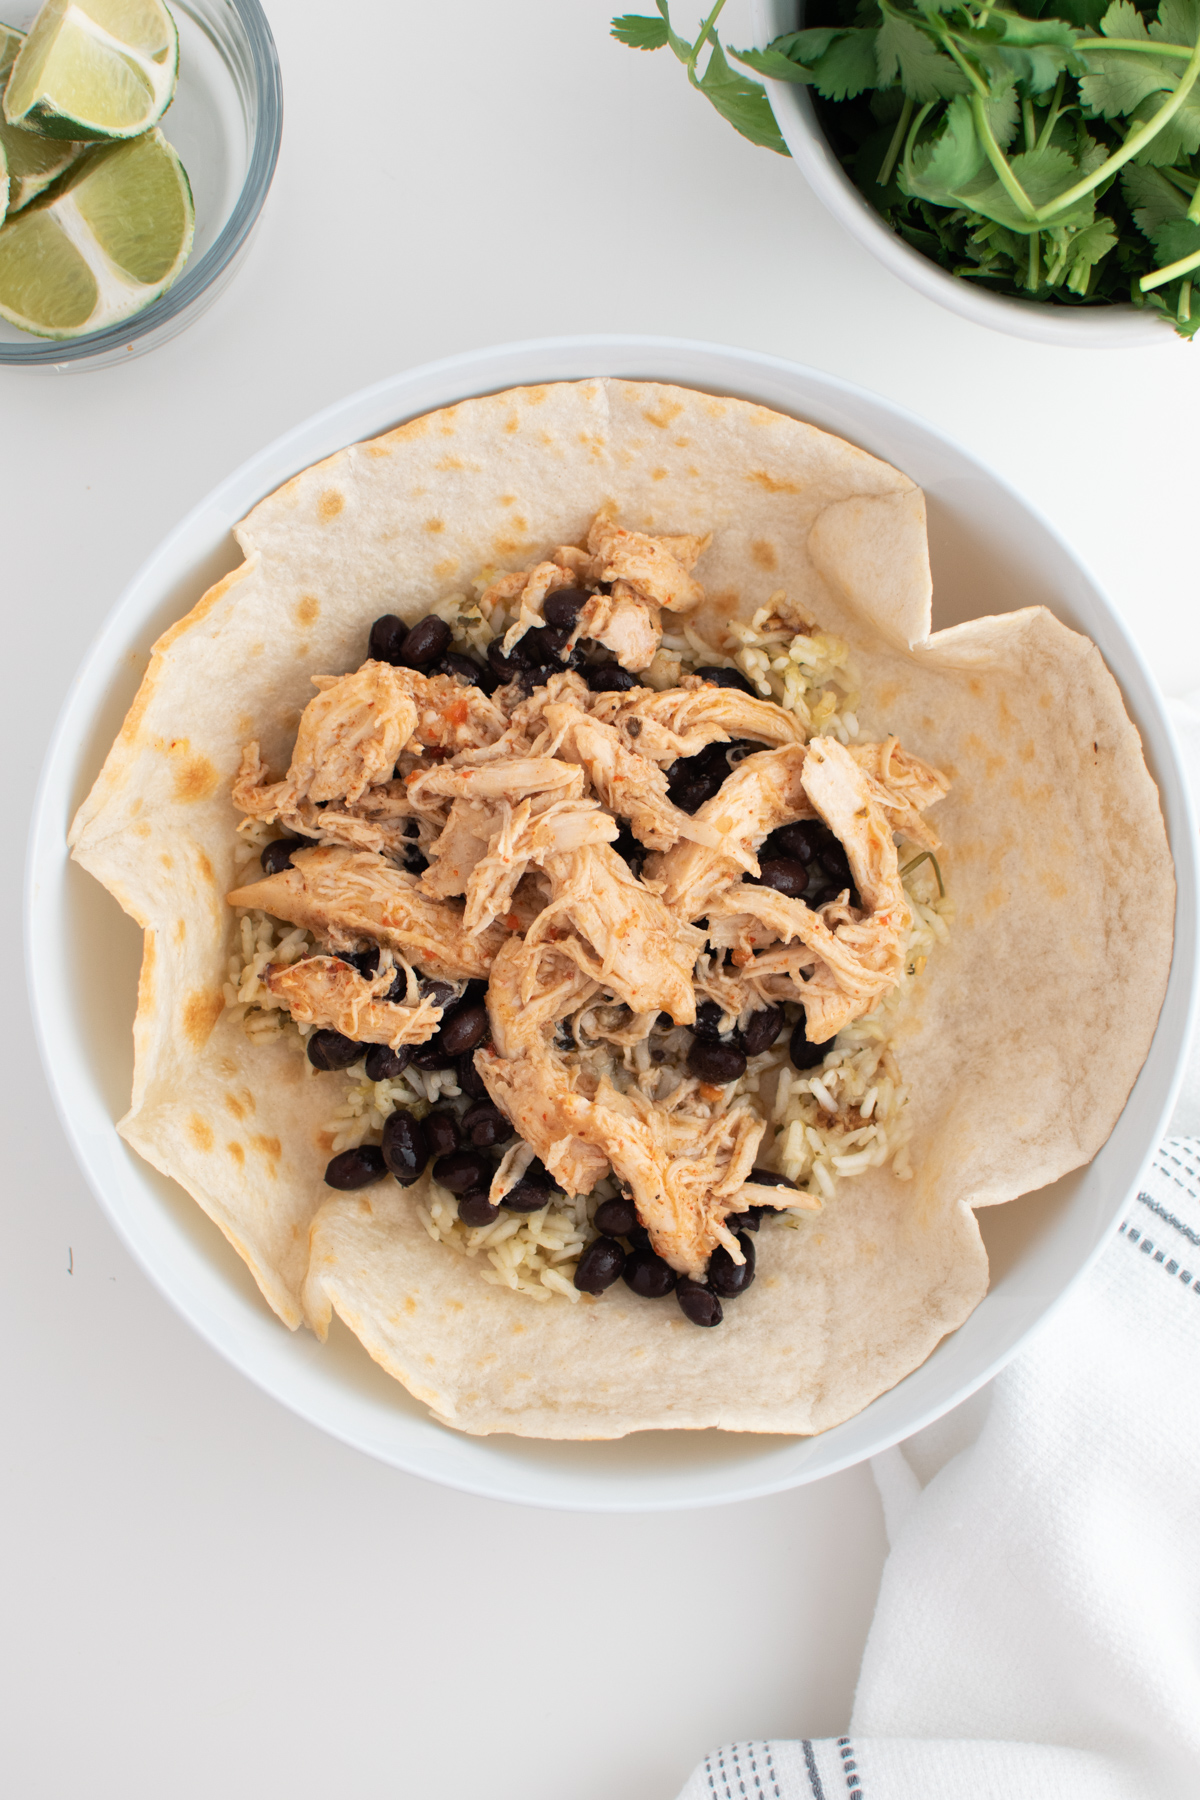 Shredded chicken, black beans, and cilantro lime rice in a tortilla all in white bowl.